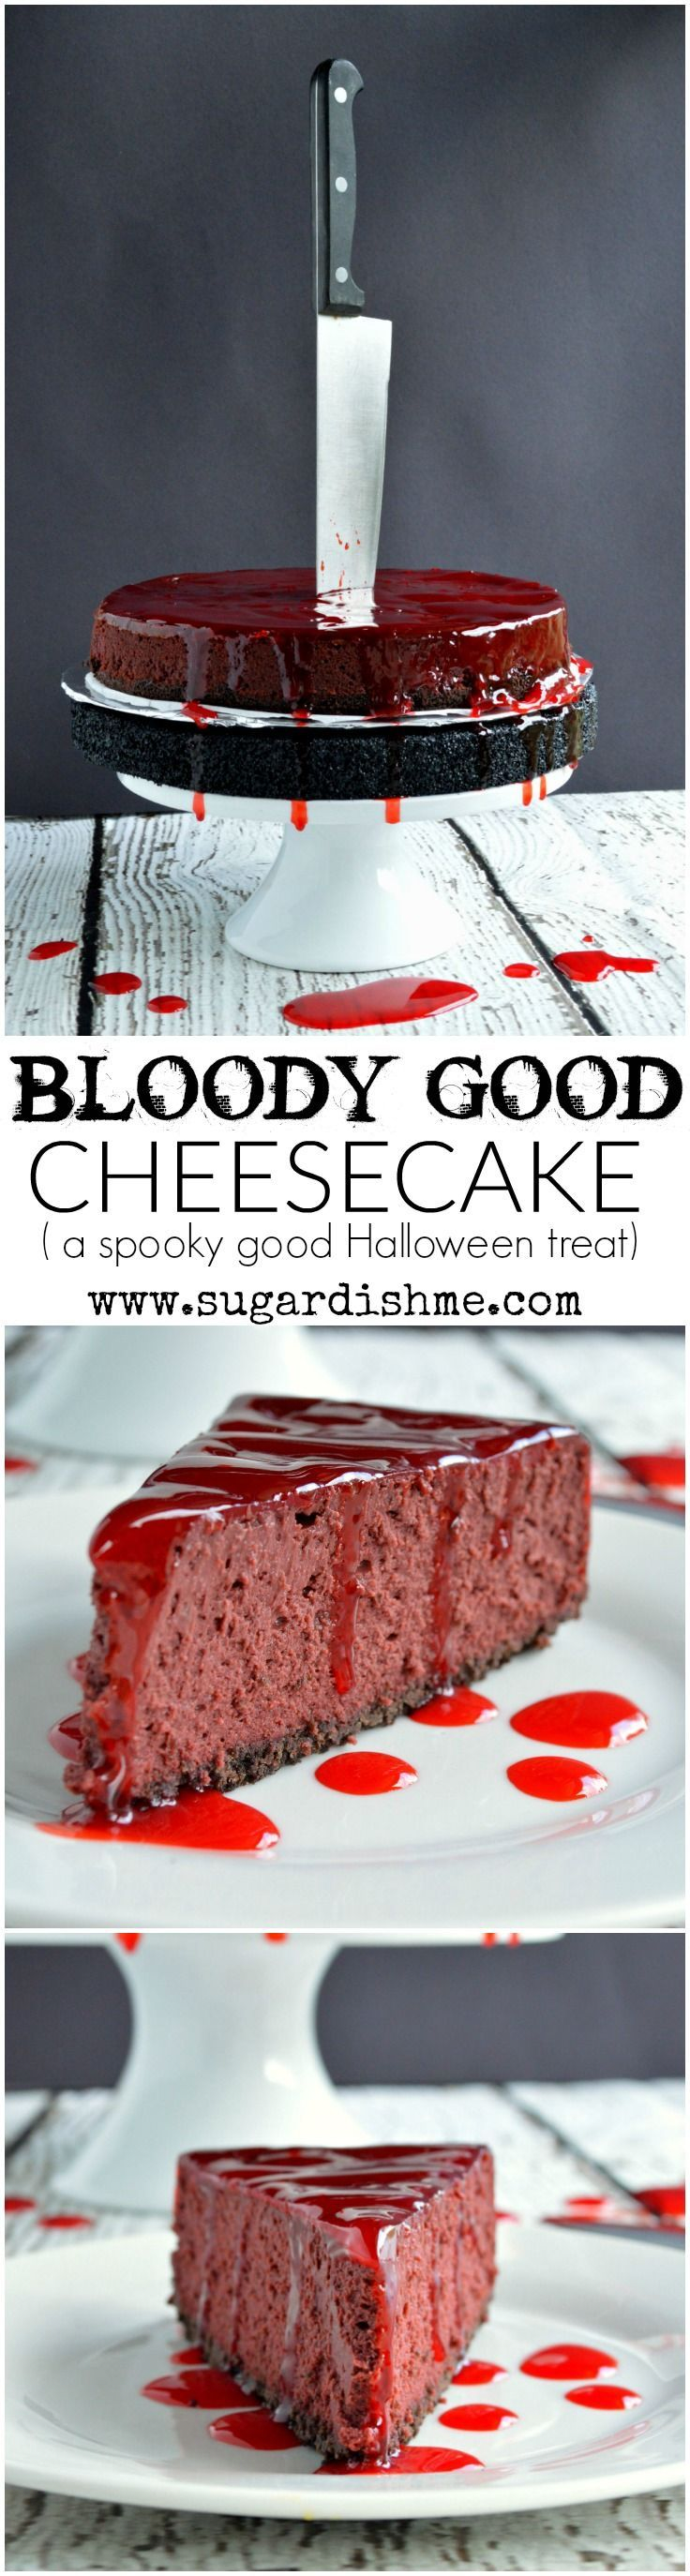 Bloody Good Cheesecake